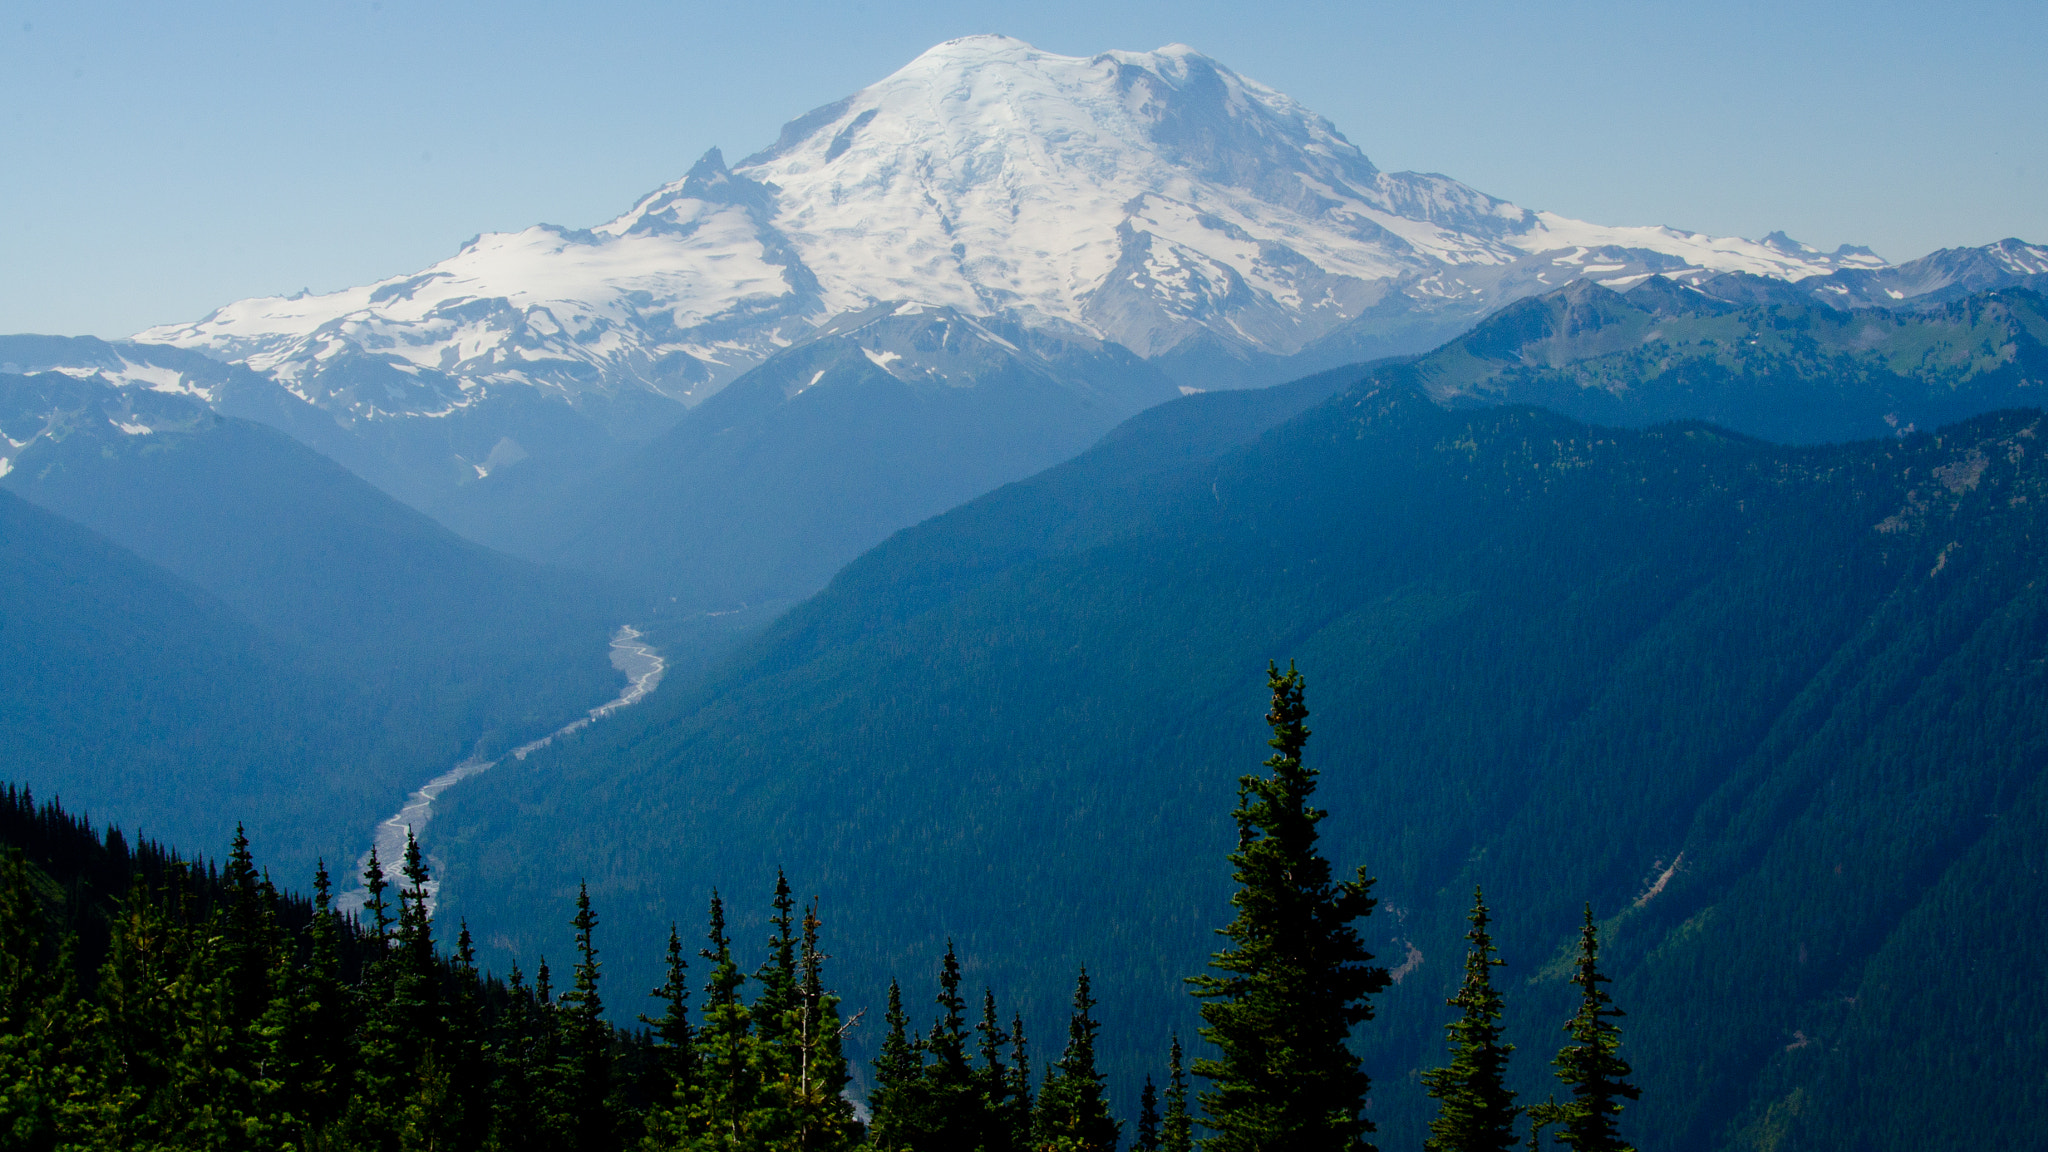 Photograph Mt. Rainier - Jewel of the Pacific Northwest by Gregory Brown on 500px